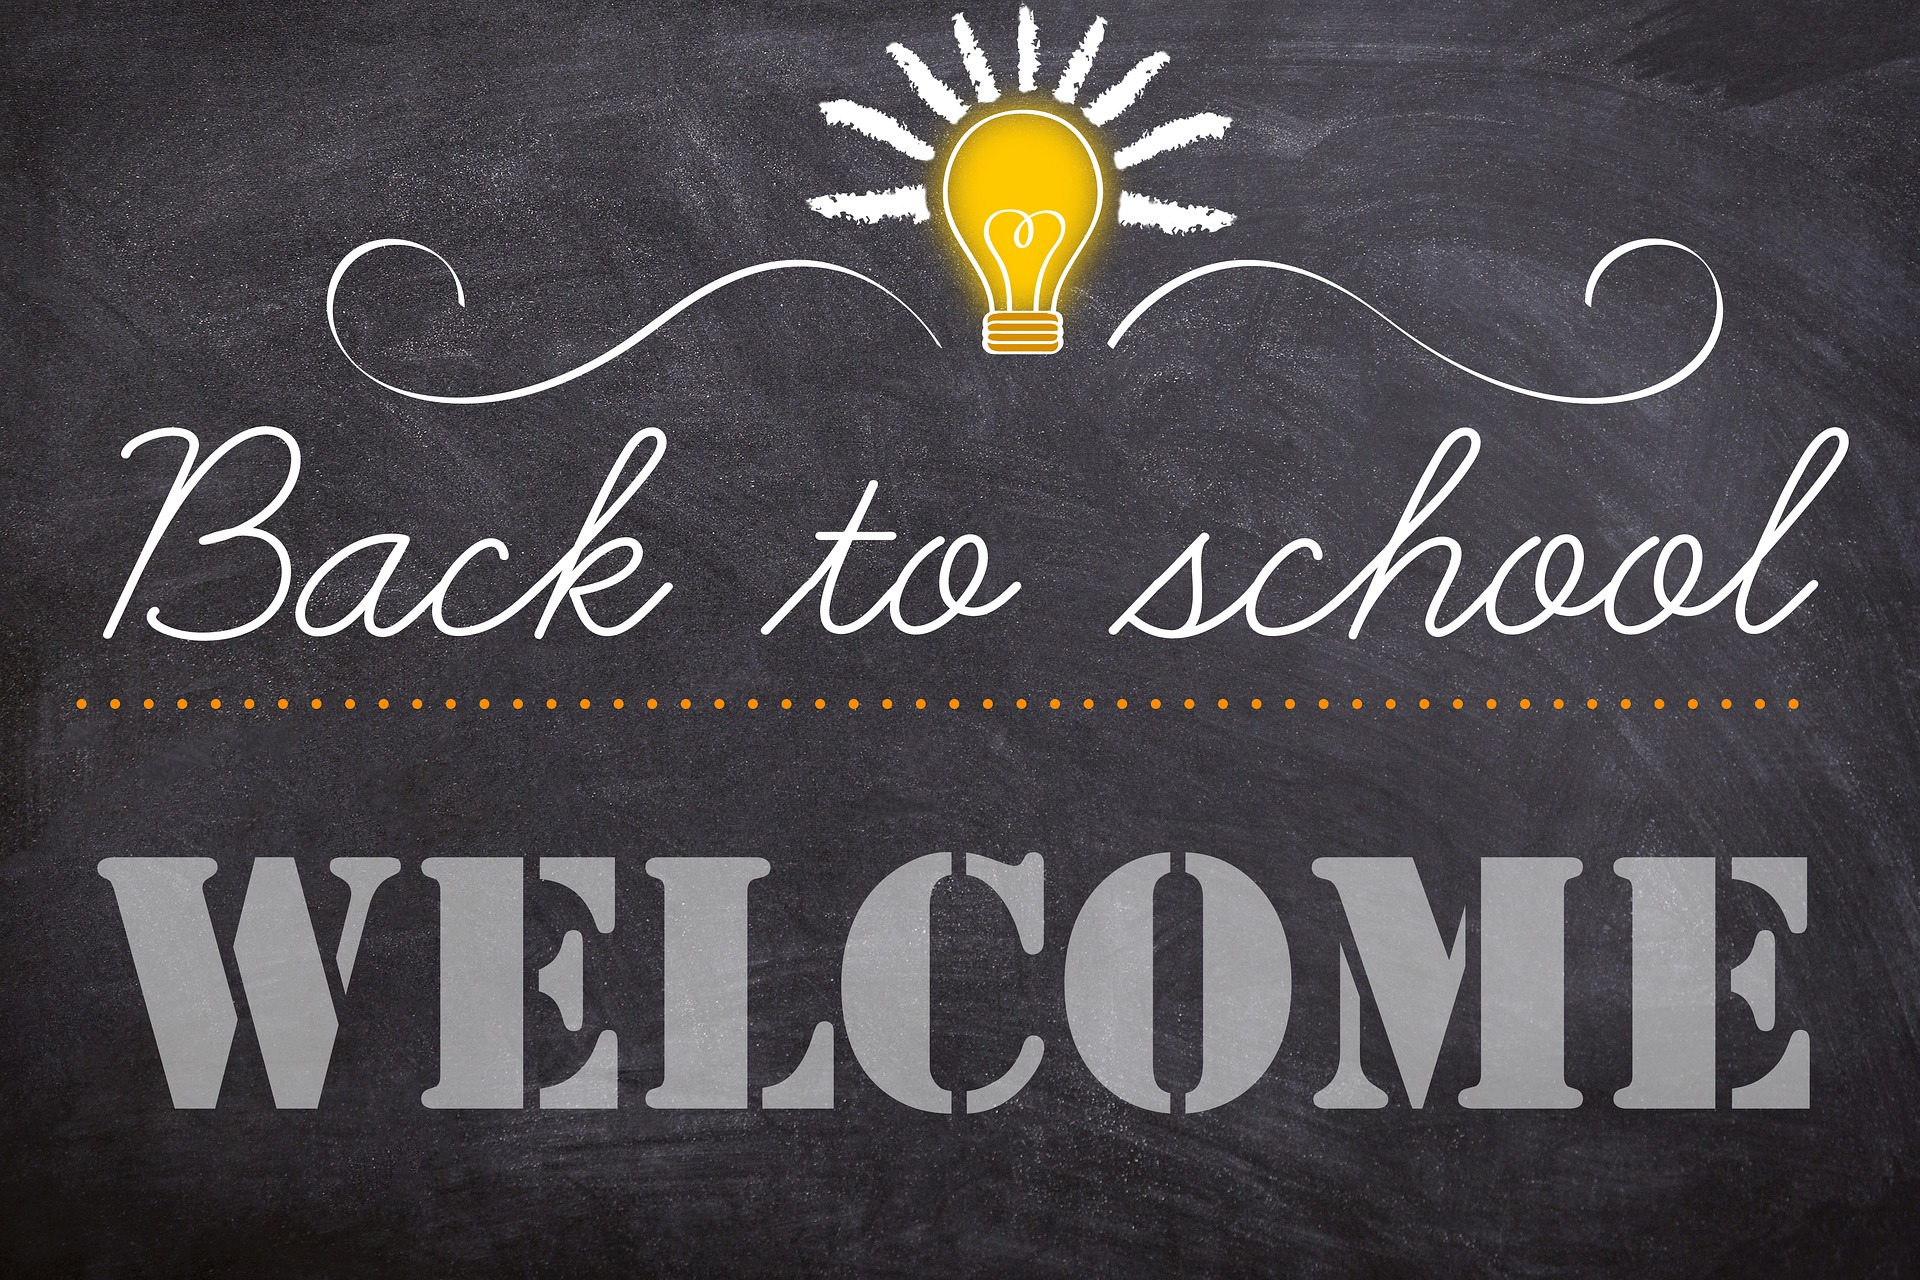 Back to School Welcome Message on Chalkboard